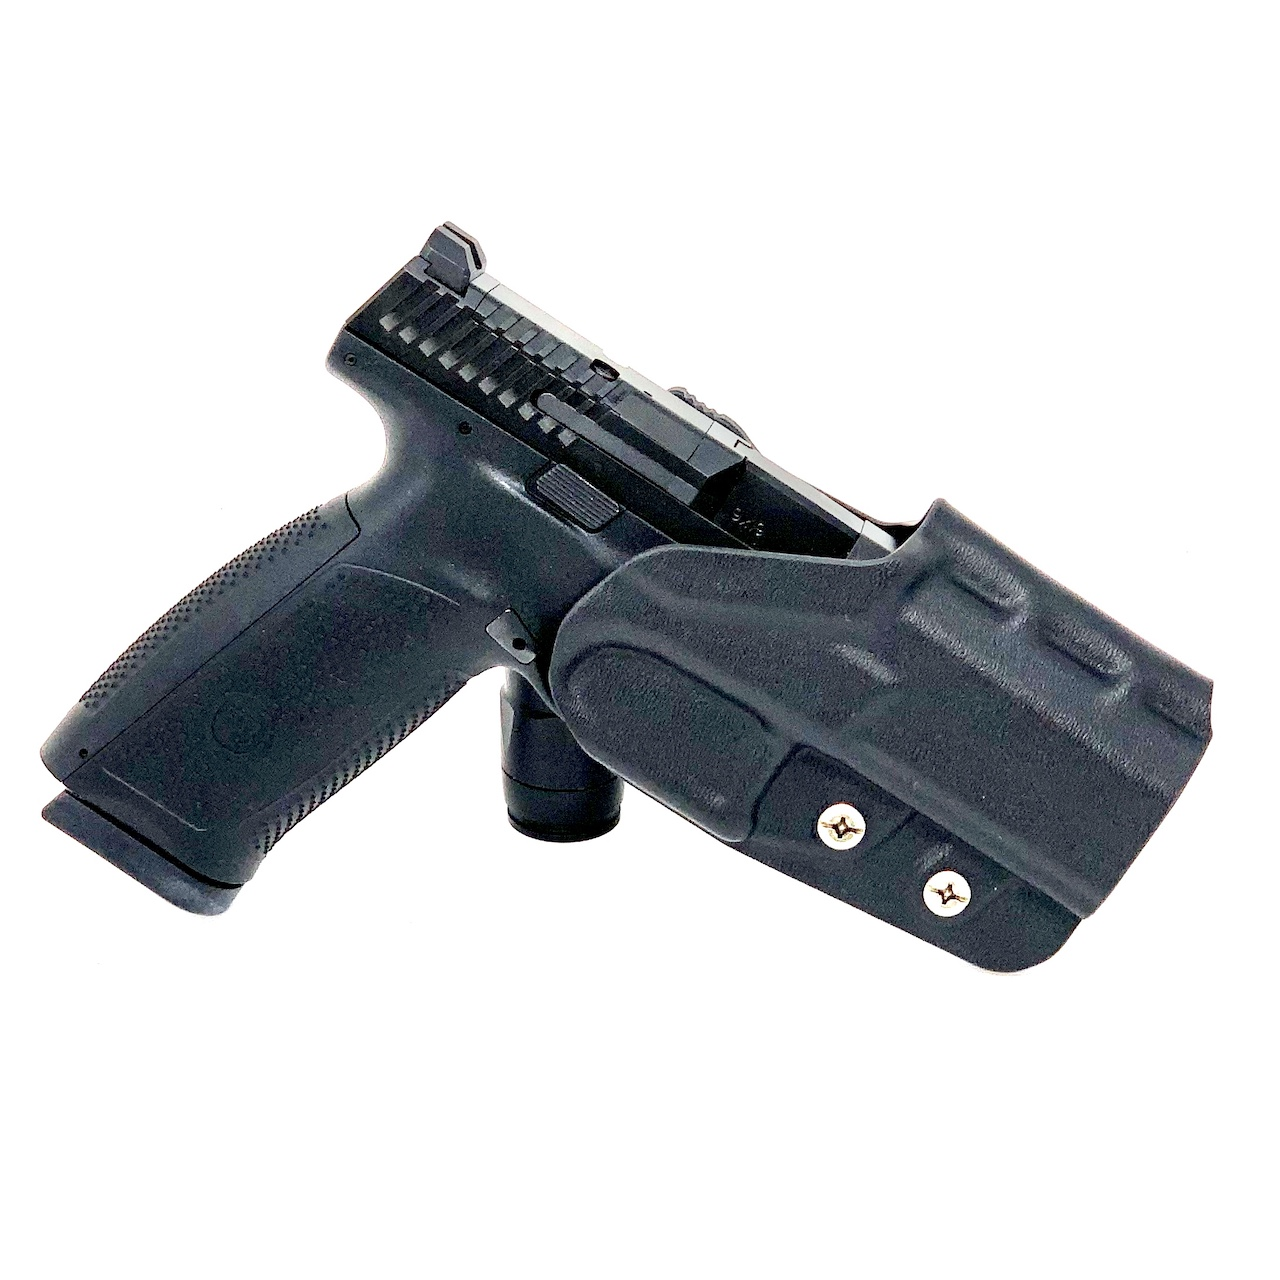 CZ P10F Optics Ready OWB Competition USPSA Holster